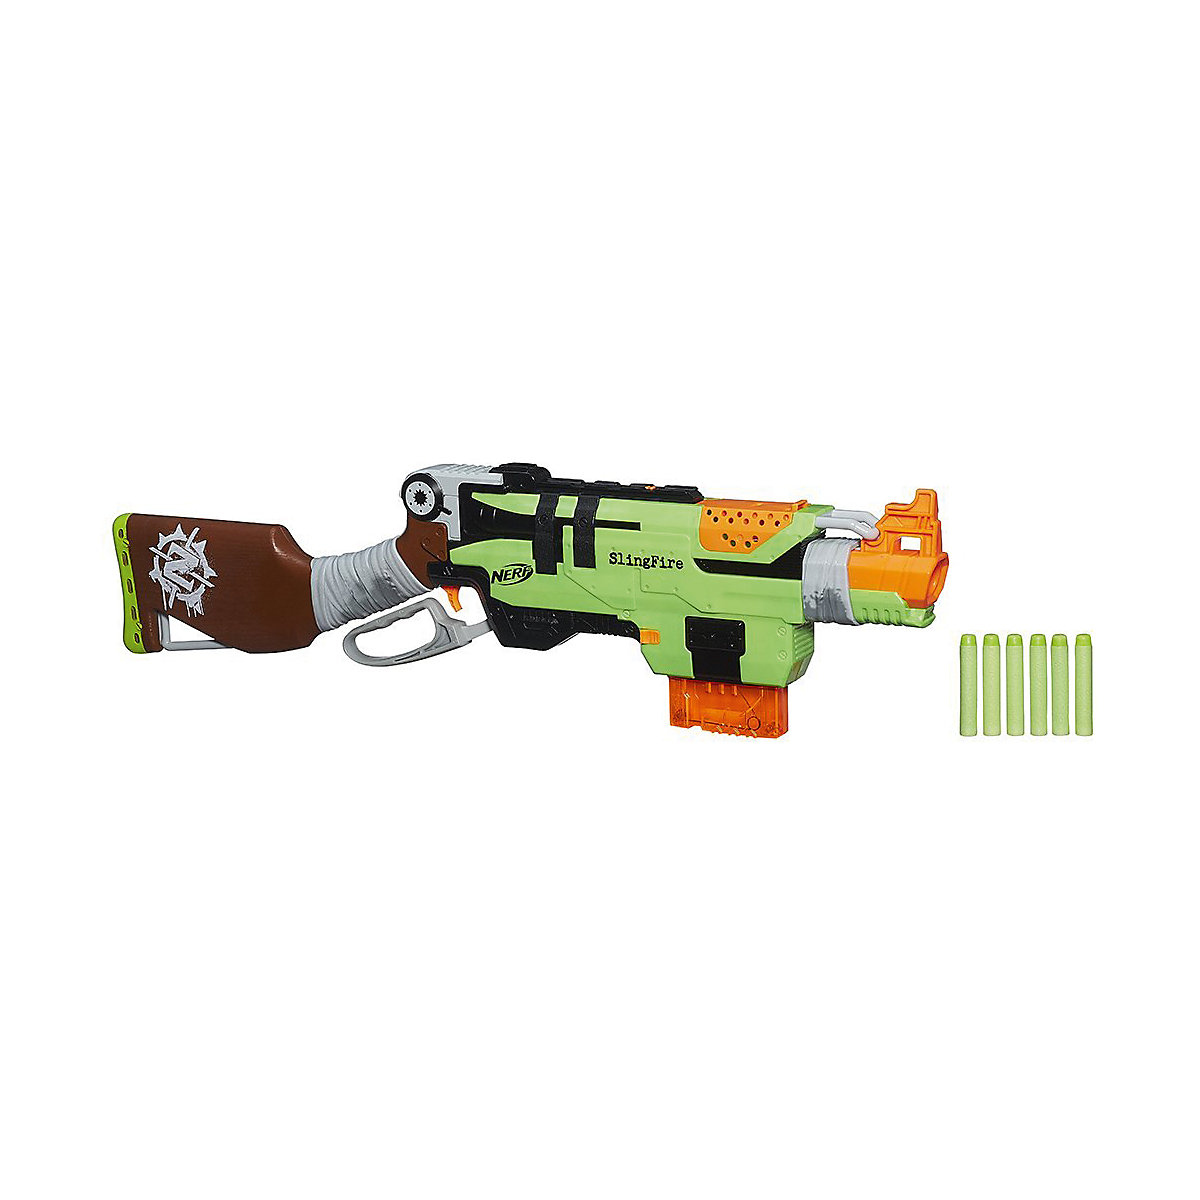 Toy Guns NERF 3550830 Children Kids Toy Gun Weapon Blasters Boys Shooting games Outdoor play toy guns nerf 3550830 children kids toy gun weapon blasters boys shooting games outdoor play